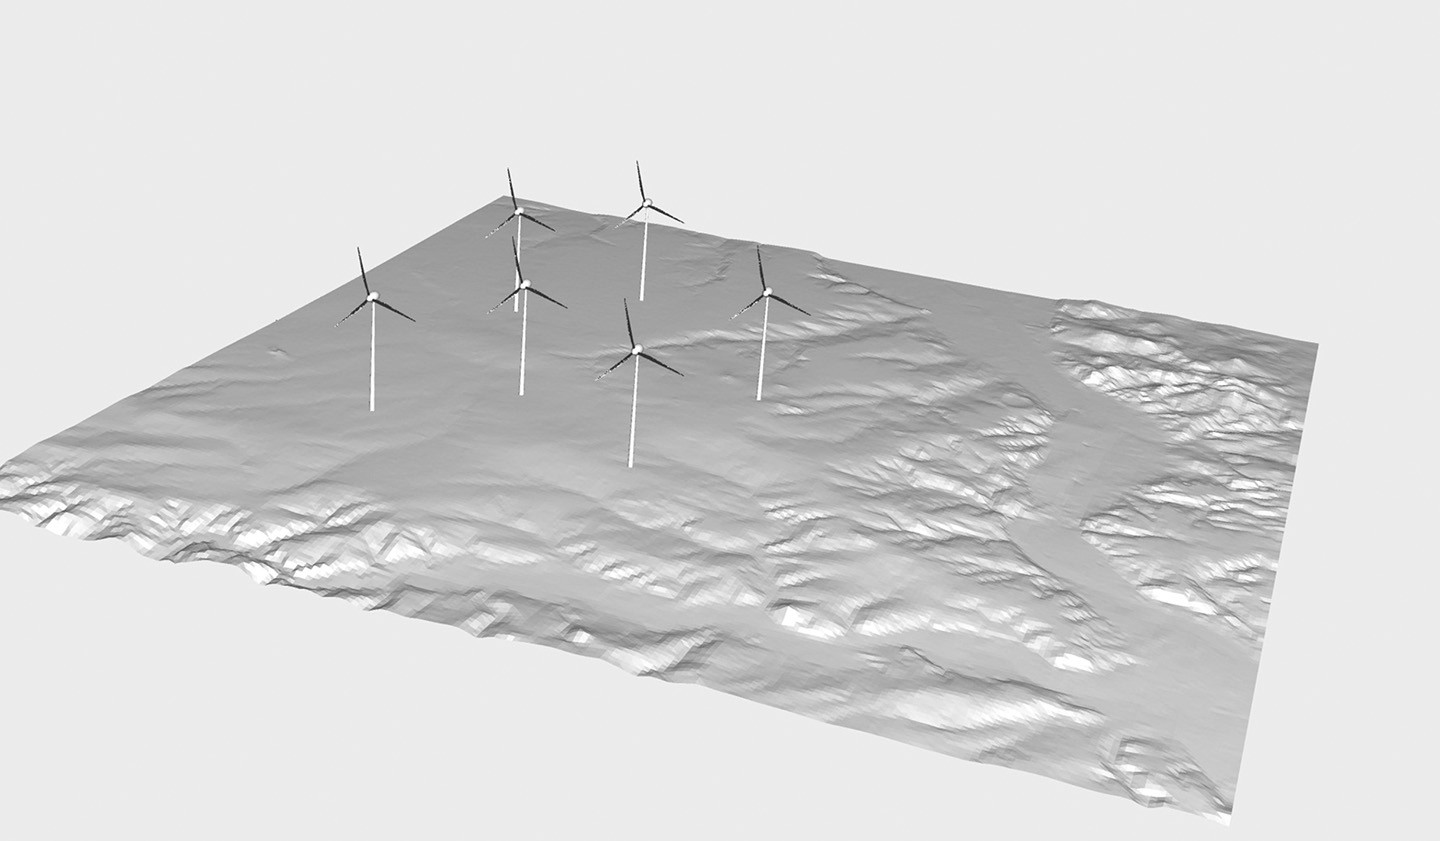 Terrain model with wind turbines (schematic representation, wind turbines are oversized).